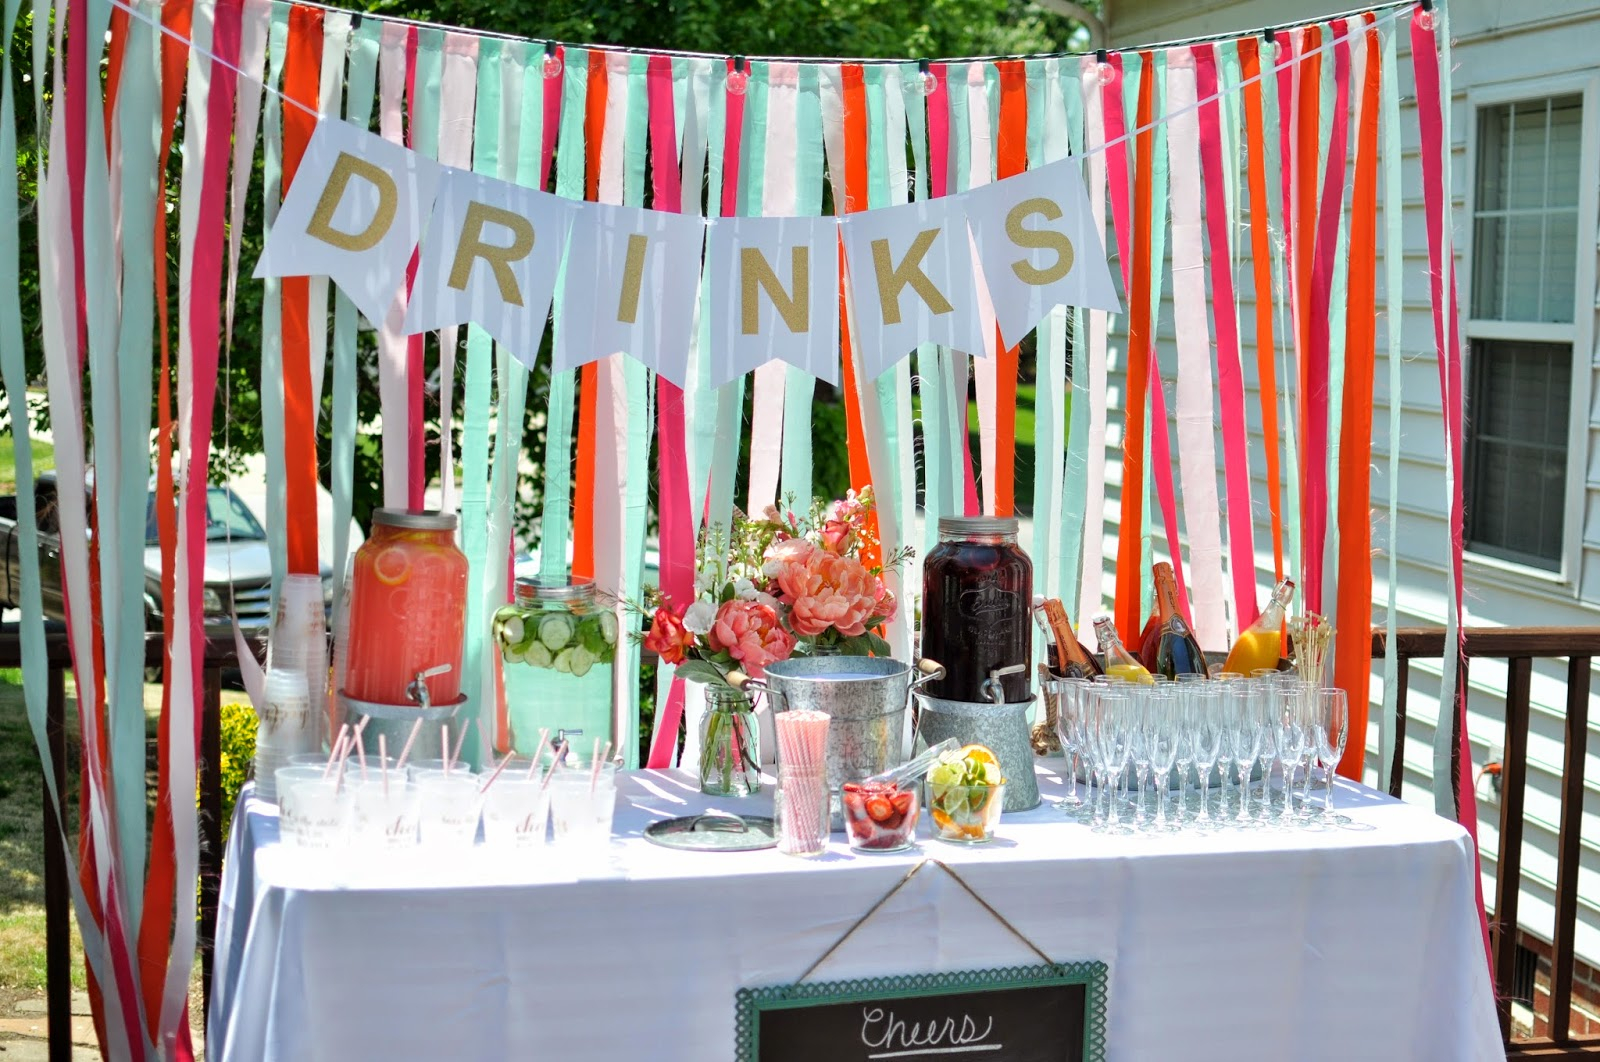 Outdoor Summer Engagement Party Ideas Outdoor Designs for 13 Some of the Coolest Ways How to Upgrade Backyard Engagement Party Decorations